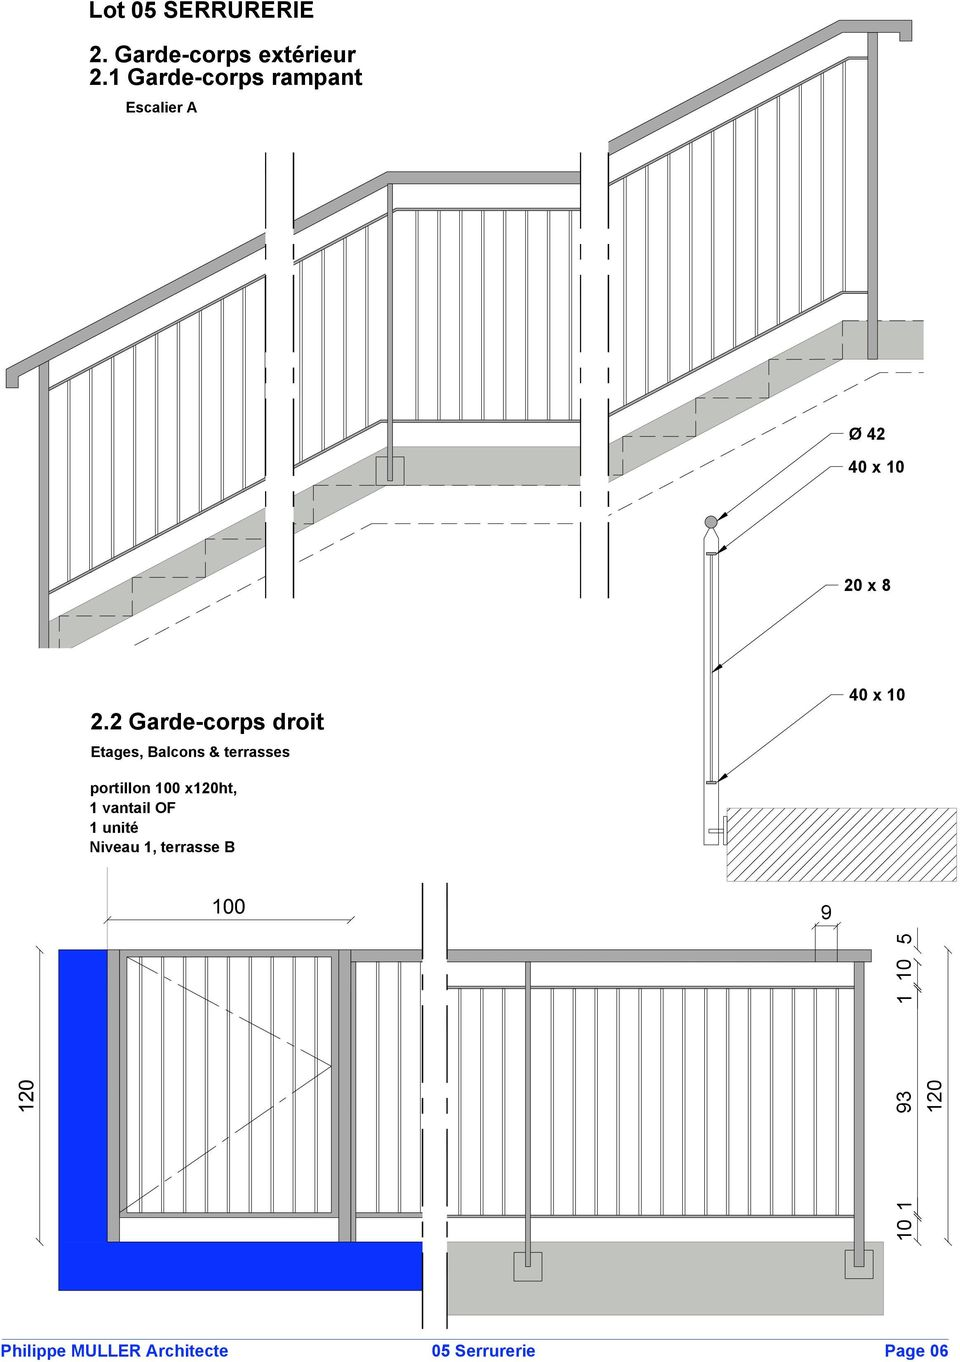 2 Garde corps droit Etages, Balcons & terrasses 40 x 10 portillon